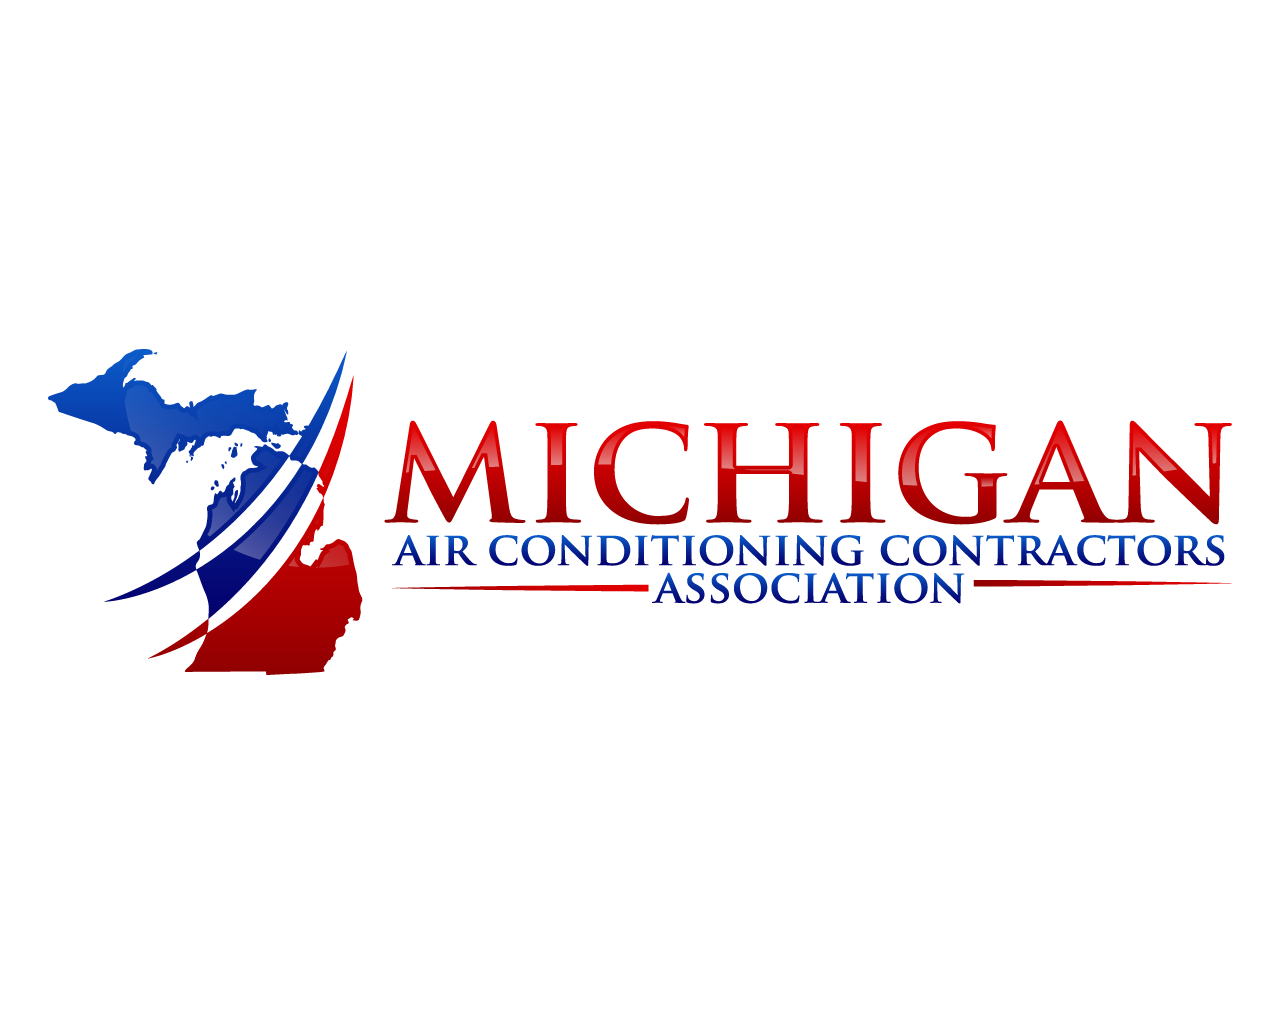 Michigan Air Conditioning Association